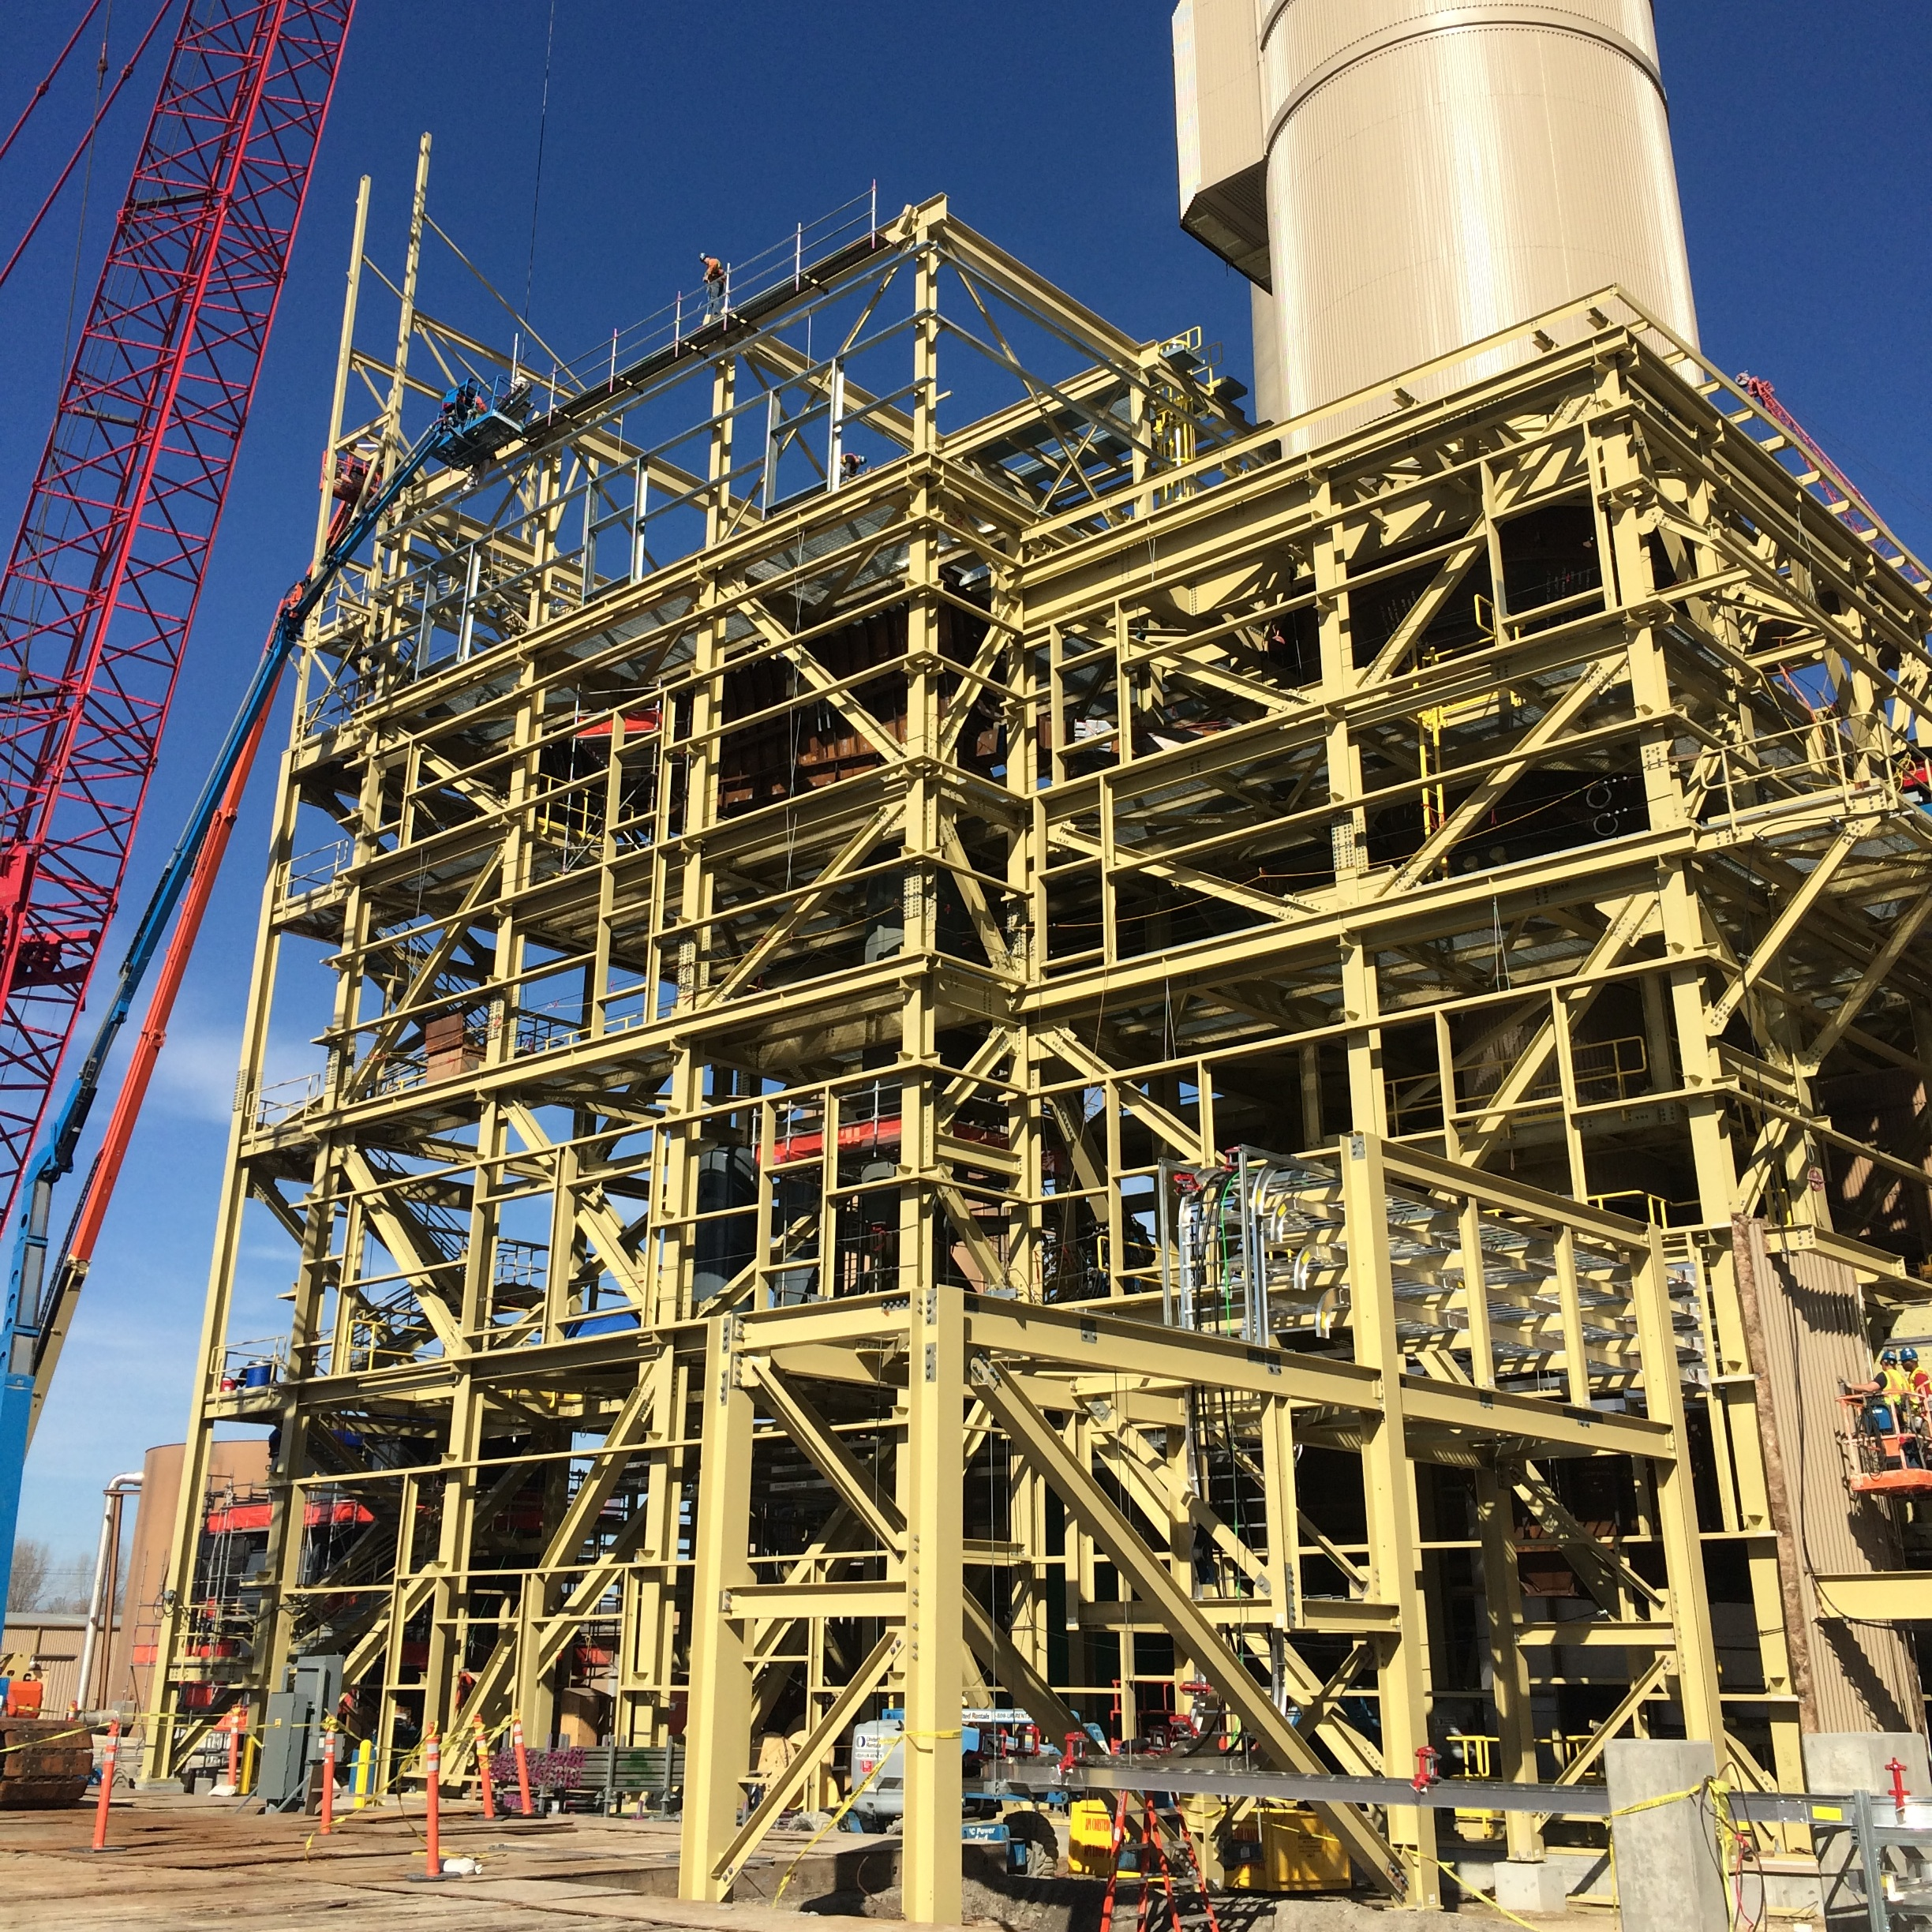 Structural Steel - AISC Advanced Certified Erector, structural steel erection, modular piperack, pre-engineered buildings, in-house specialty rigging design and execution